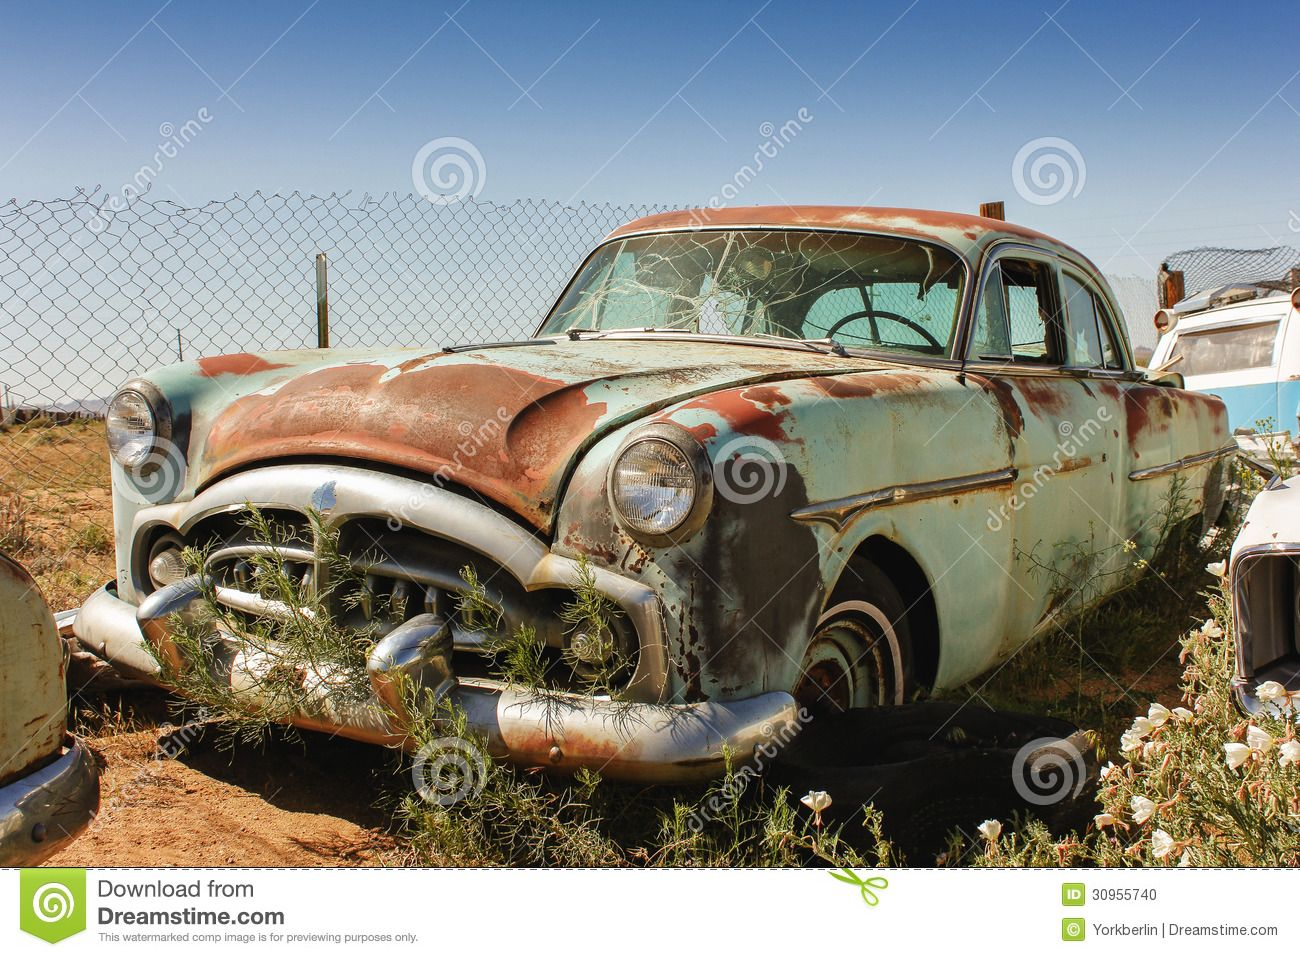 Old Rusted Cars Google Search Rusty Cars Car Abandoned Cars